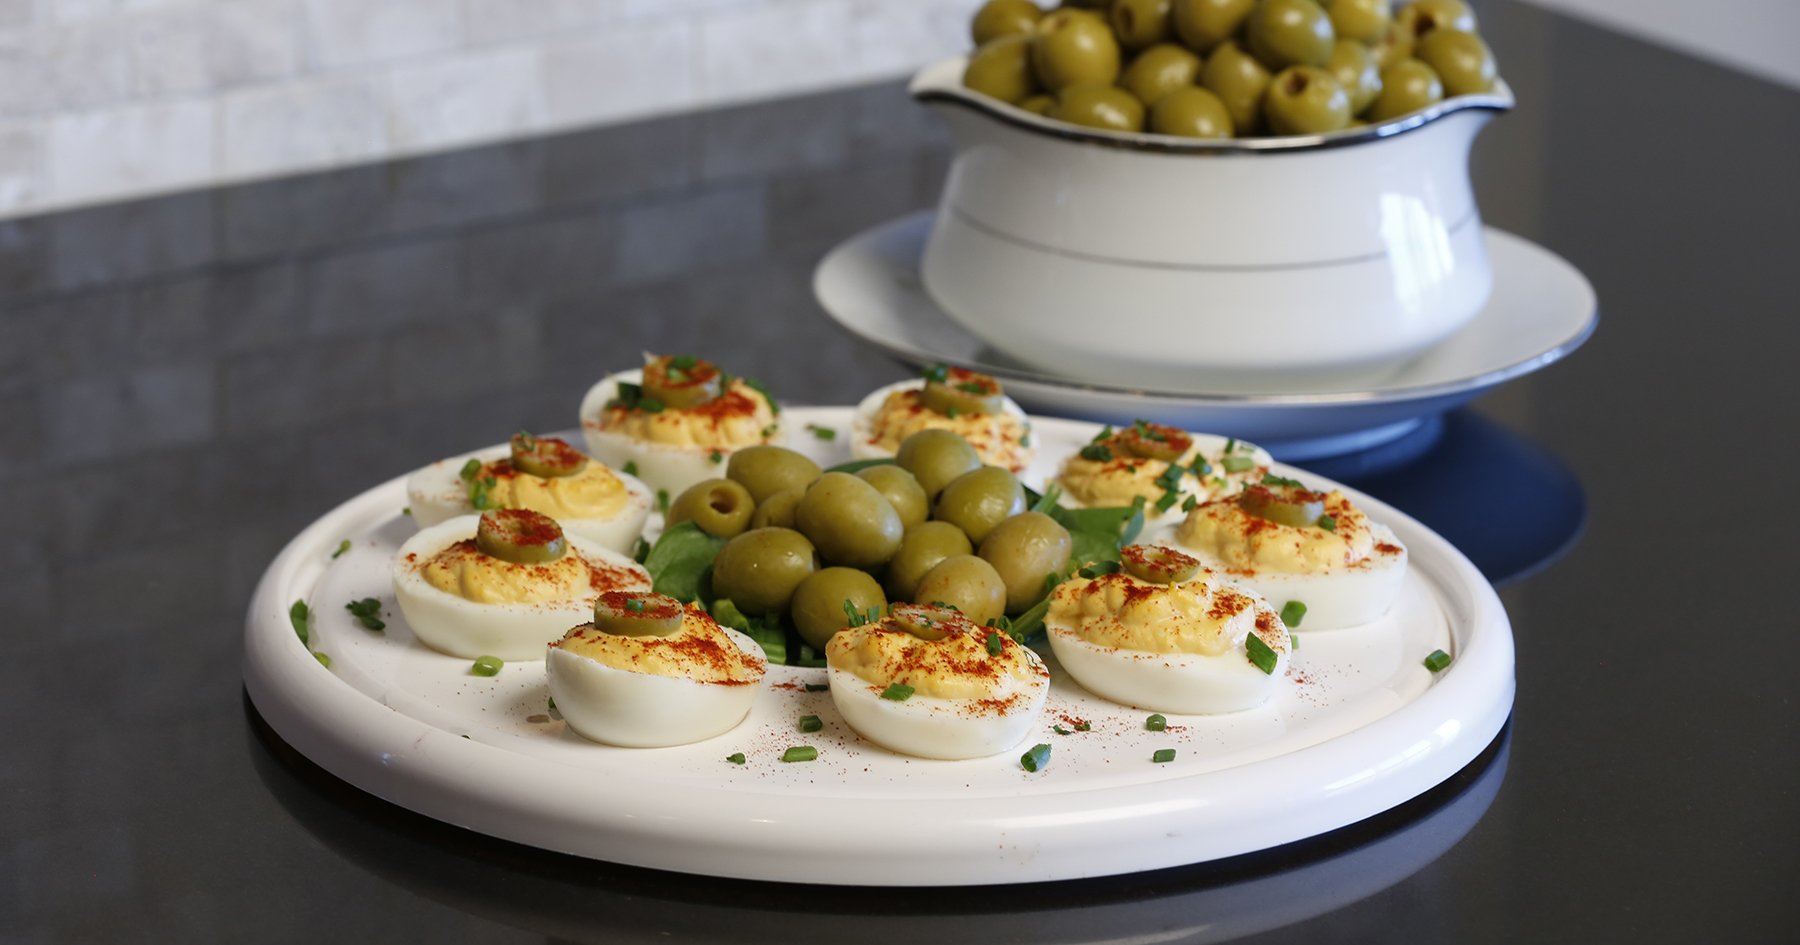 Olive-Crowned Deviled Eggs